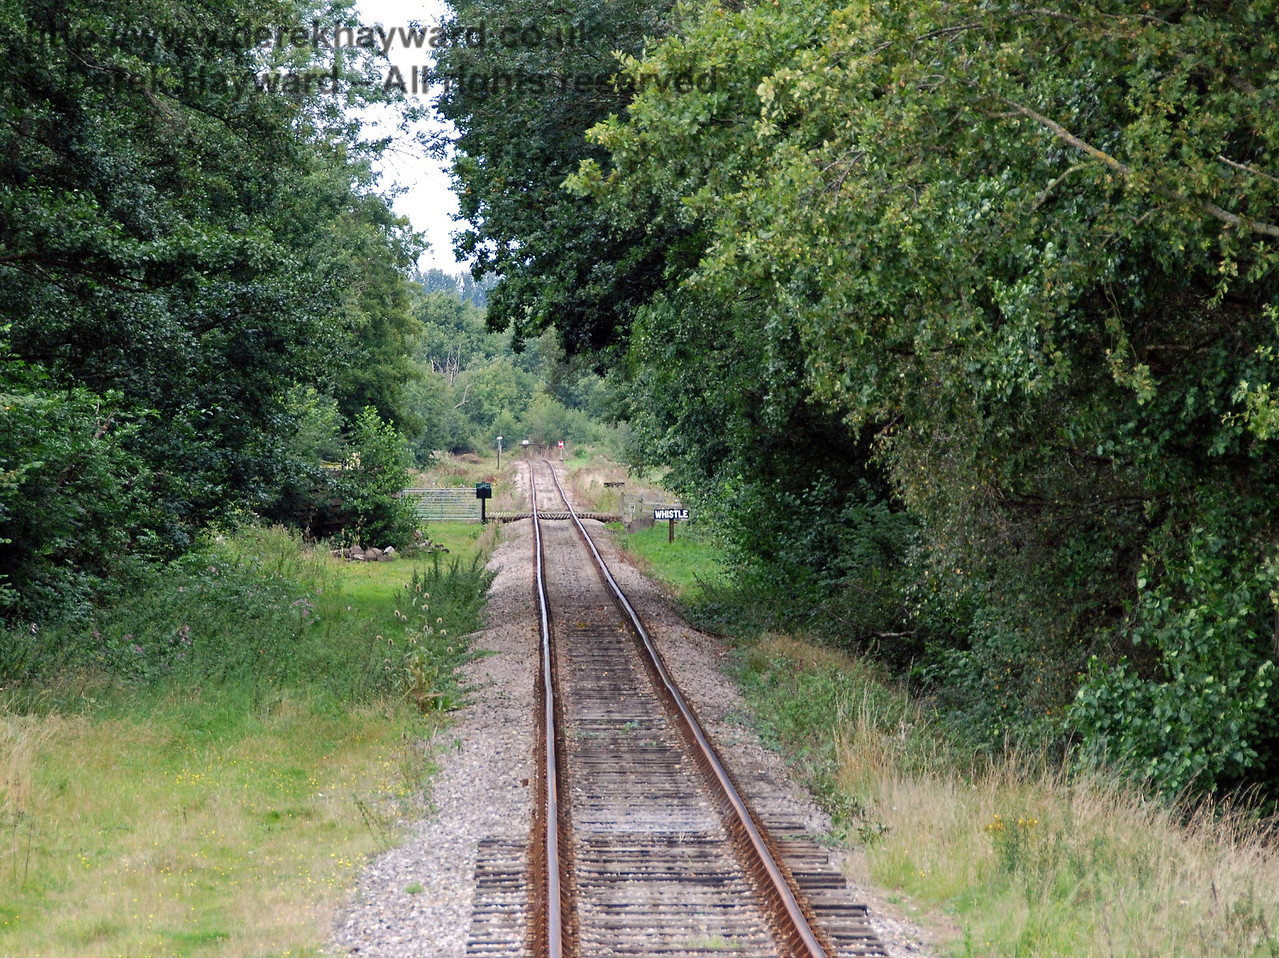 Further north, this view from the front of a train shows a public foot crossing in the distance. 02.09.2007